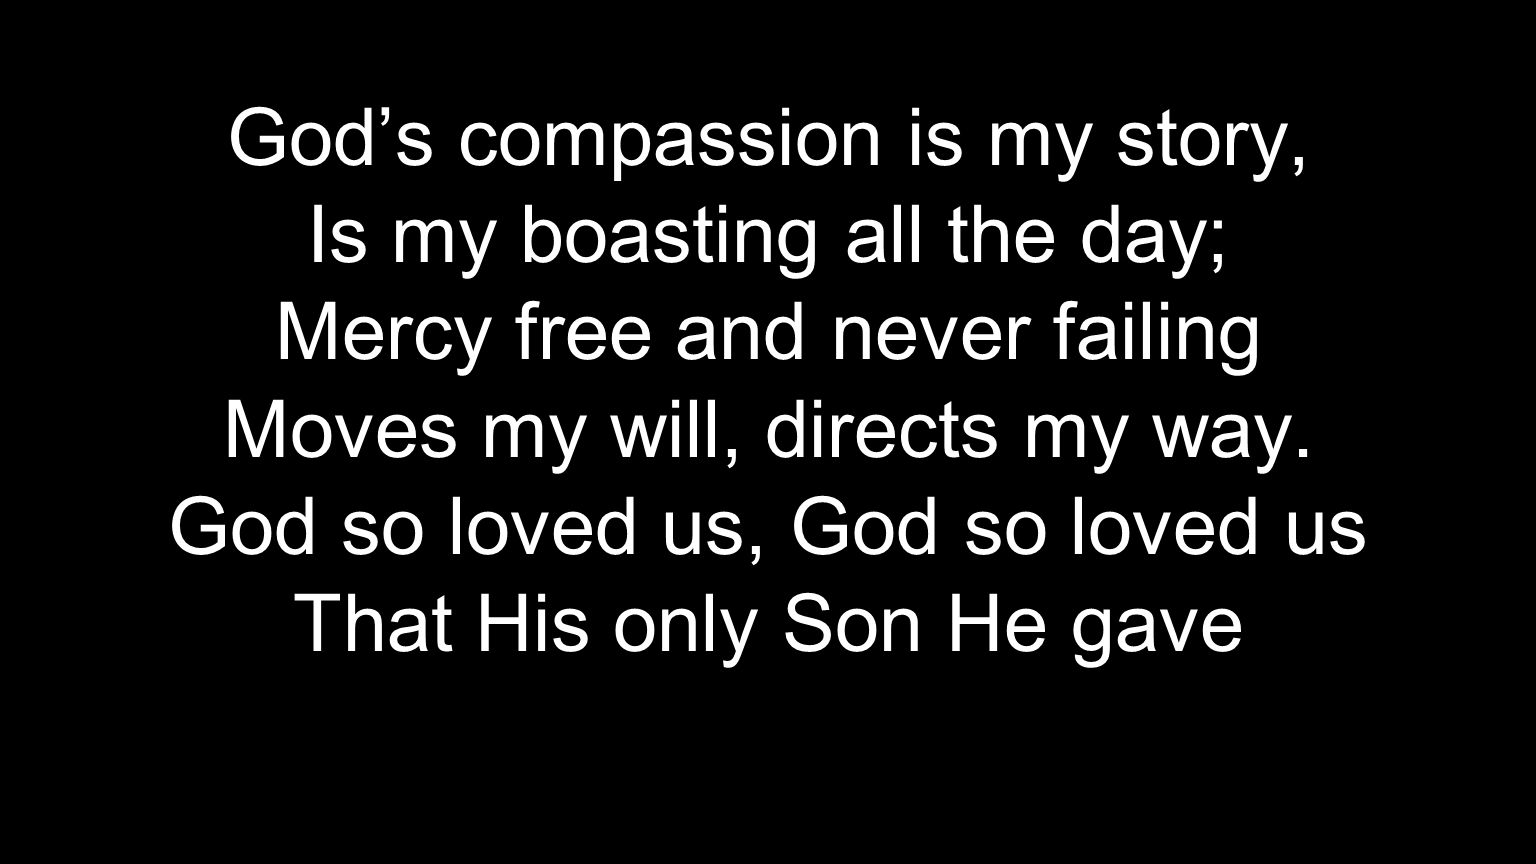 God's compassion is my story, Is my boasting all the day; Mercy free and never failing Moves my will, directs my way. God so loved us, God so loved us